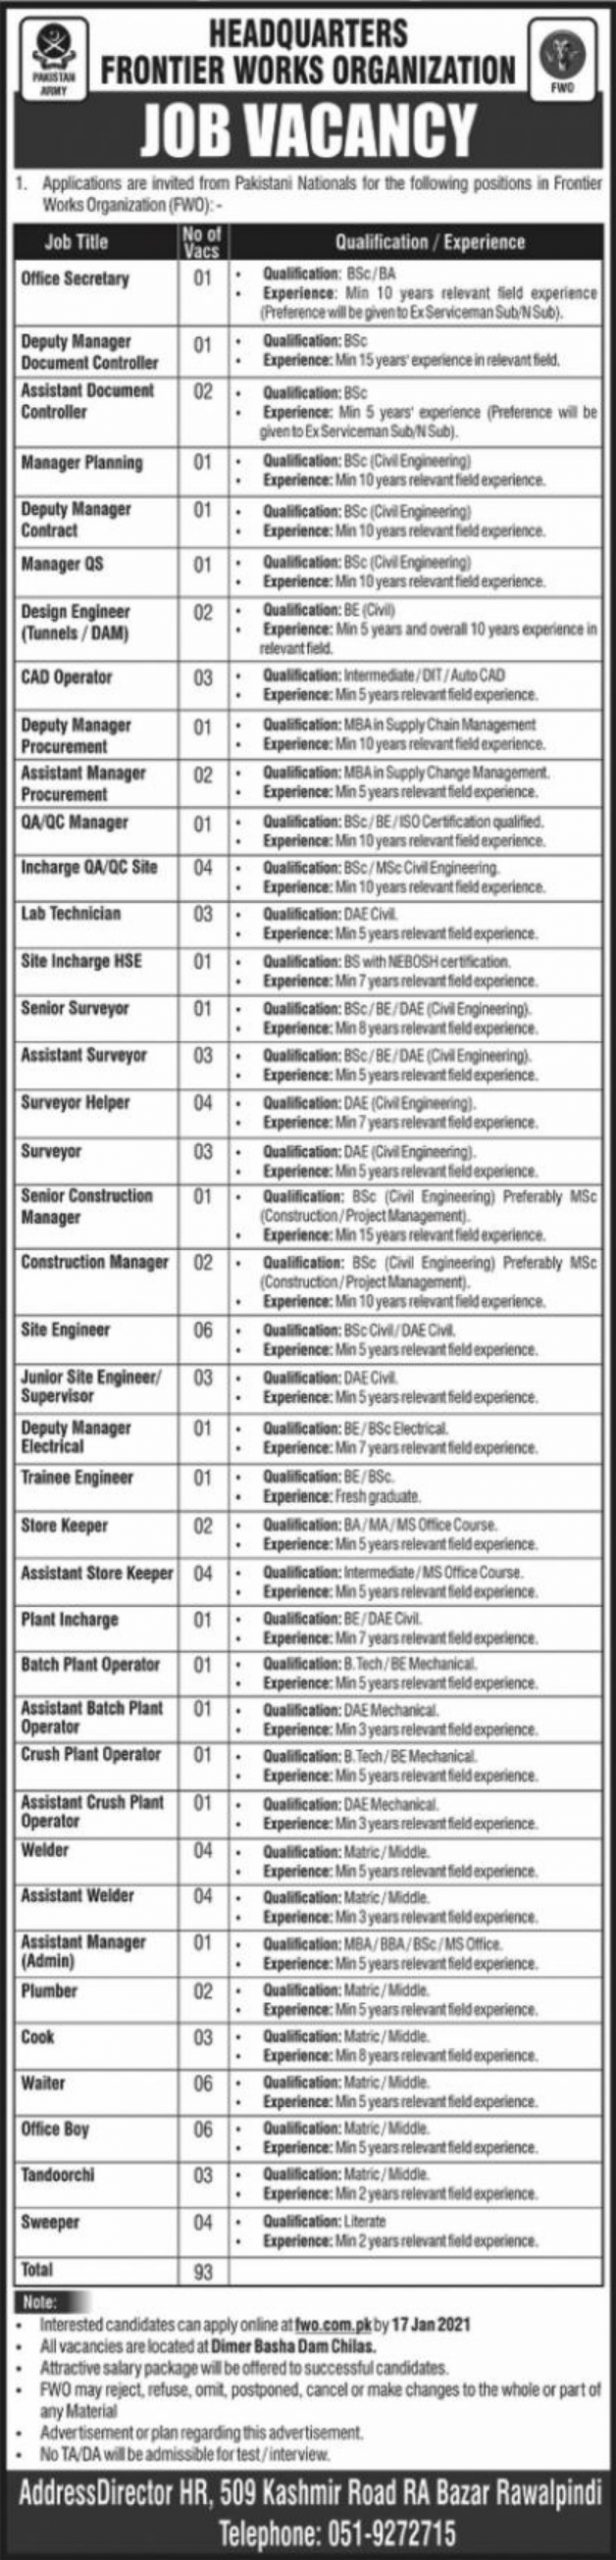 Frontier Works Organization FWO Jobs January 2021